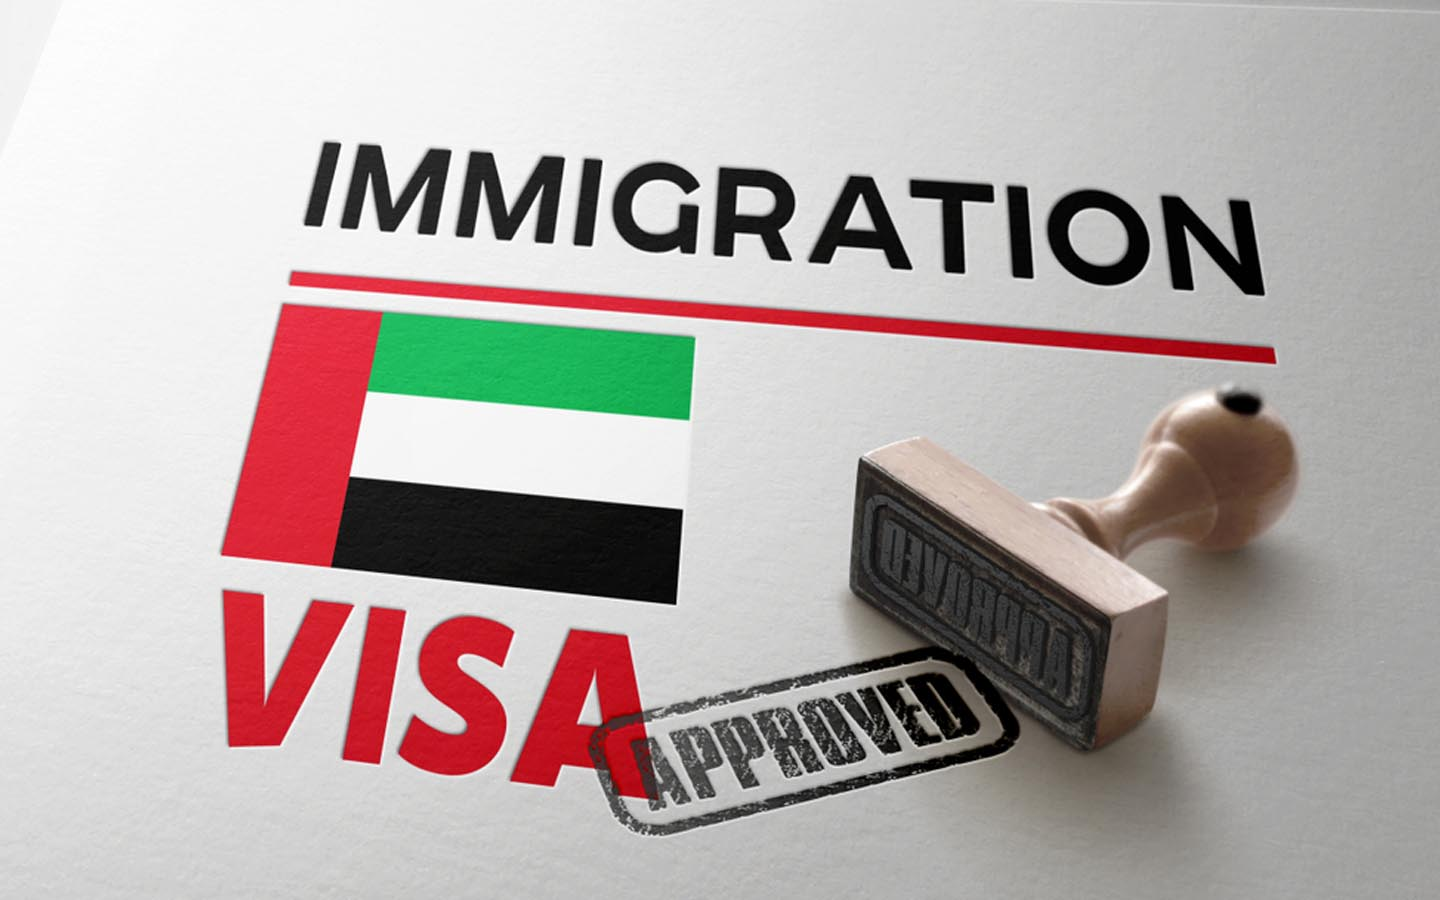 Residency visas in the UAE